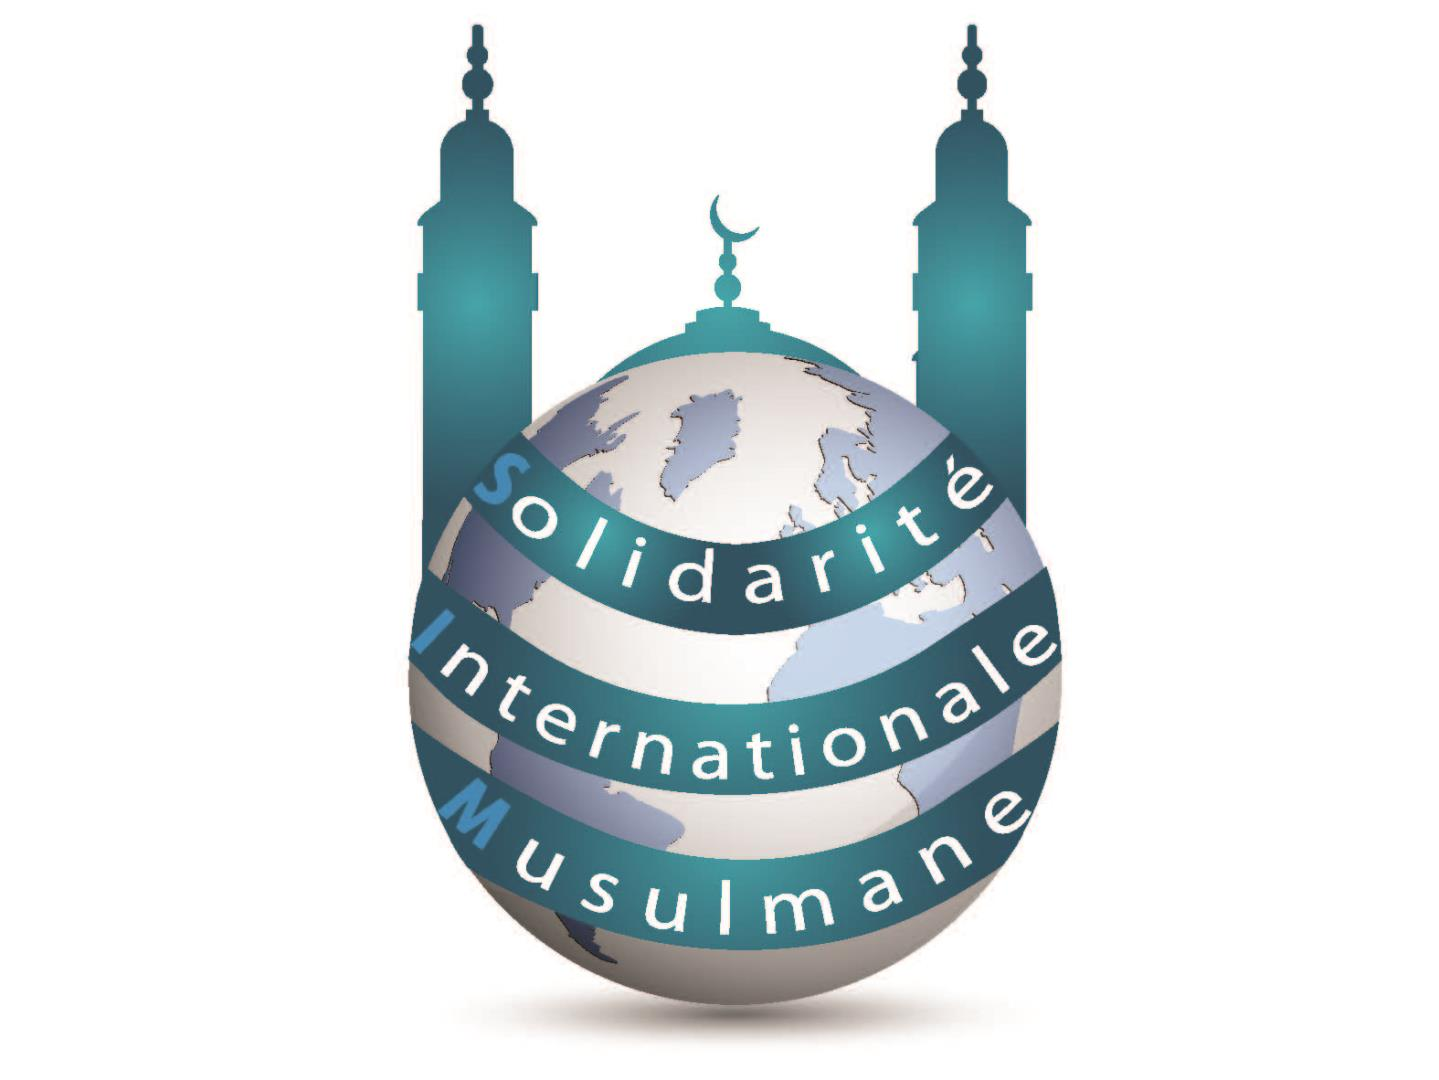 Association - Solidarité Internationale Musulmane